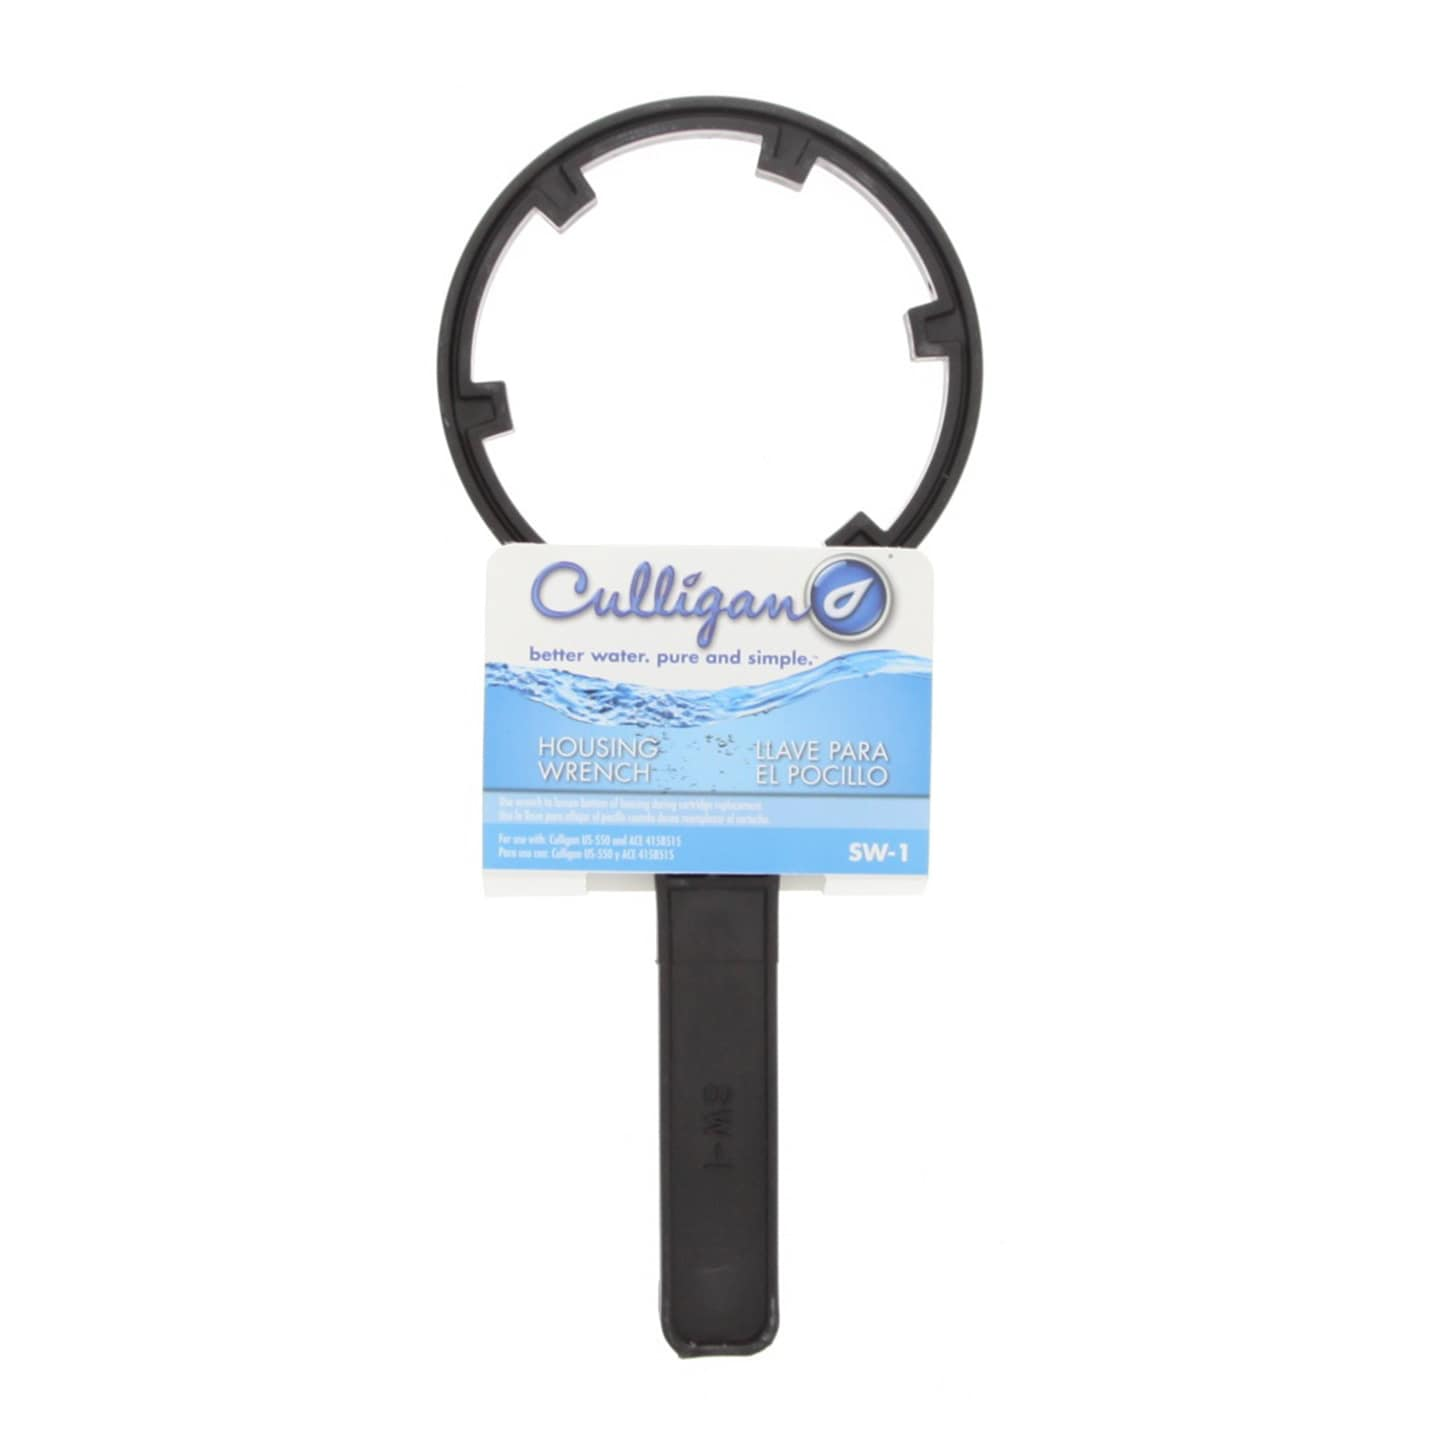 Culligan Water Filter Wrench For Ace